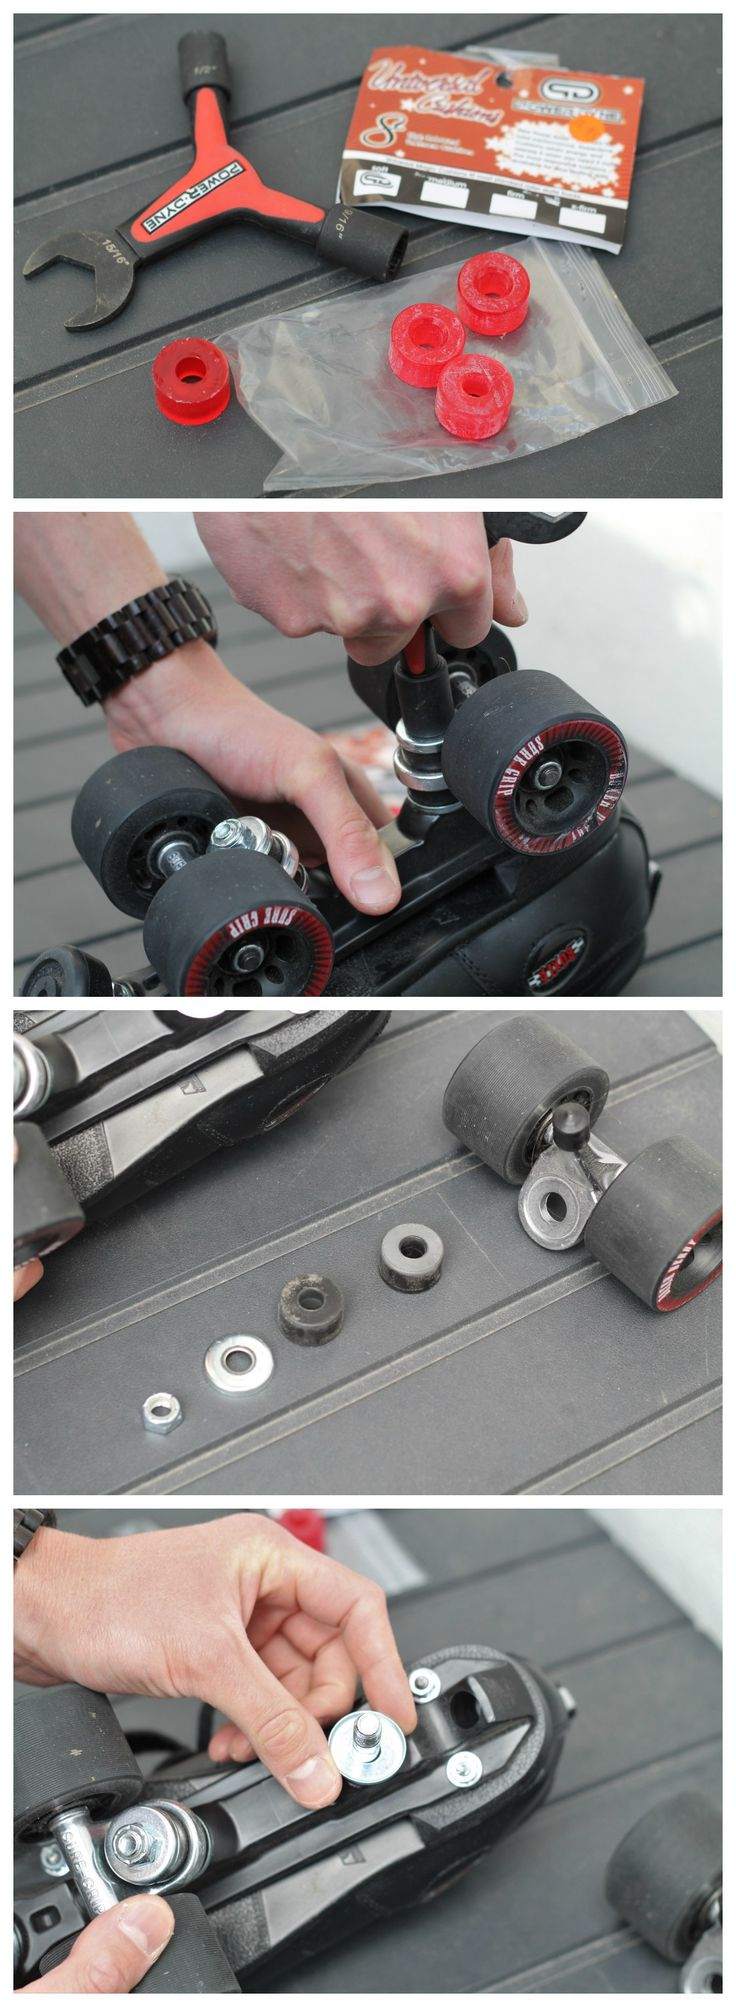 How to change your roller derby skate cushions (bushings) - part 1 (www.hellyeahrollerderby.com)